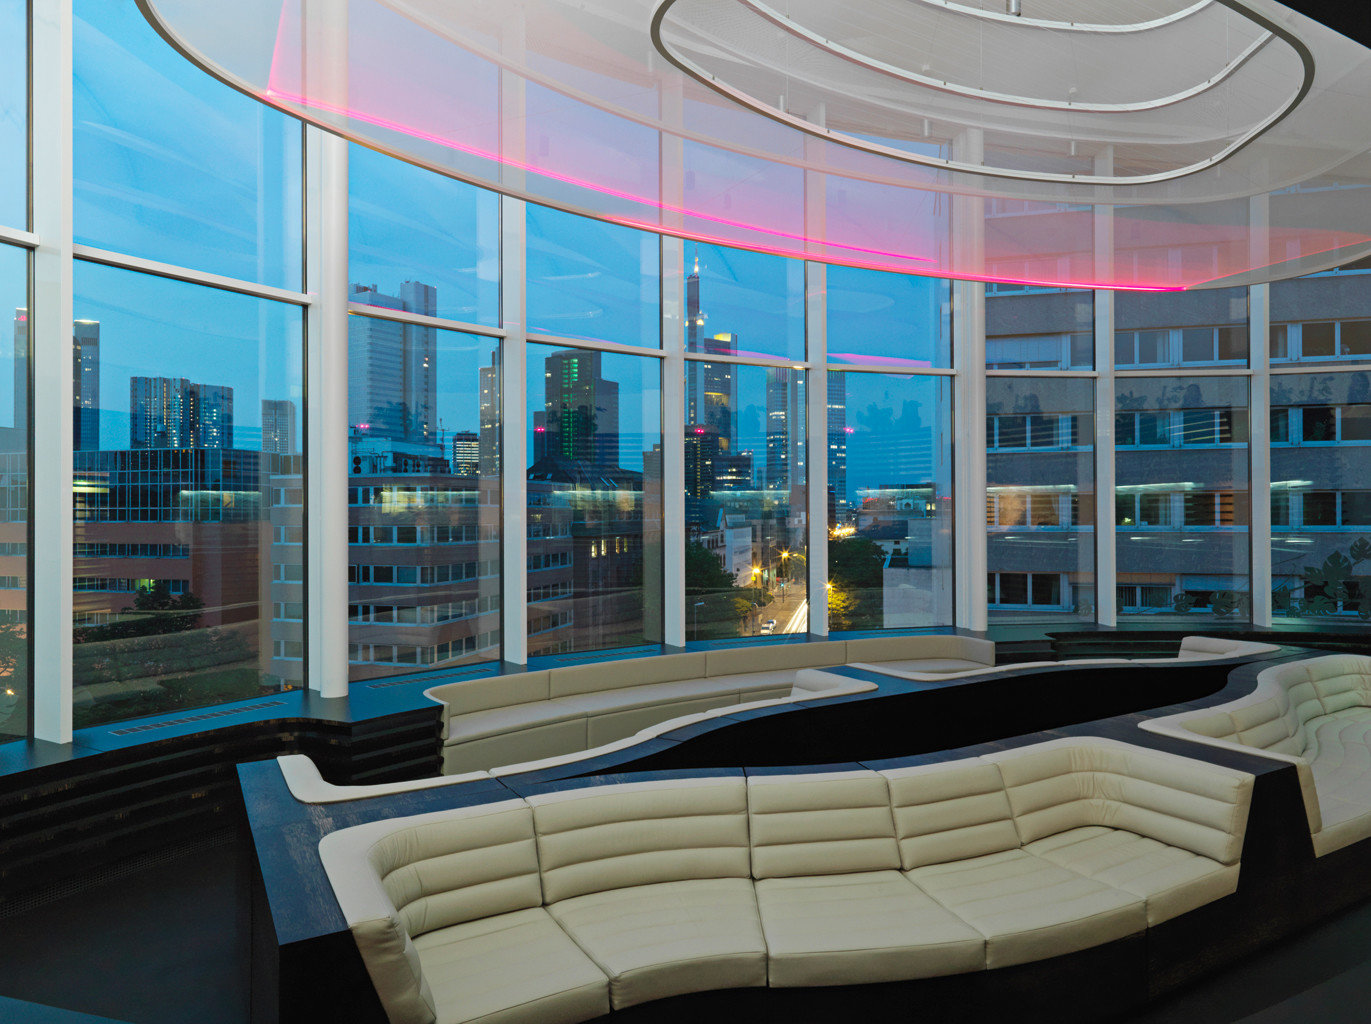 City Drink Fitness Hip Modern Scenic views Spa Wellness Lobby Architecture daylighting headquarters convention center glass overlooking